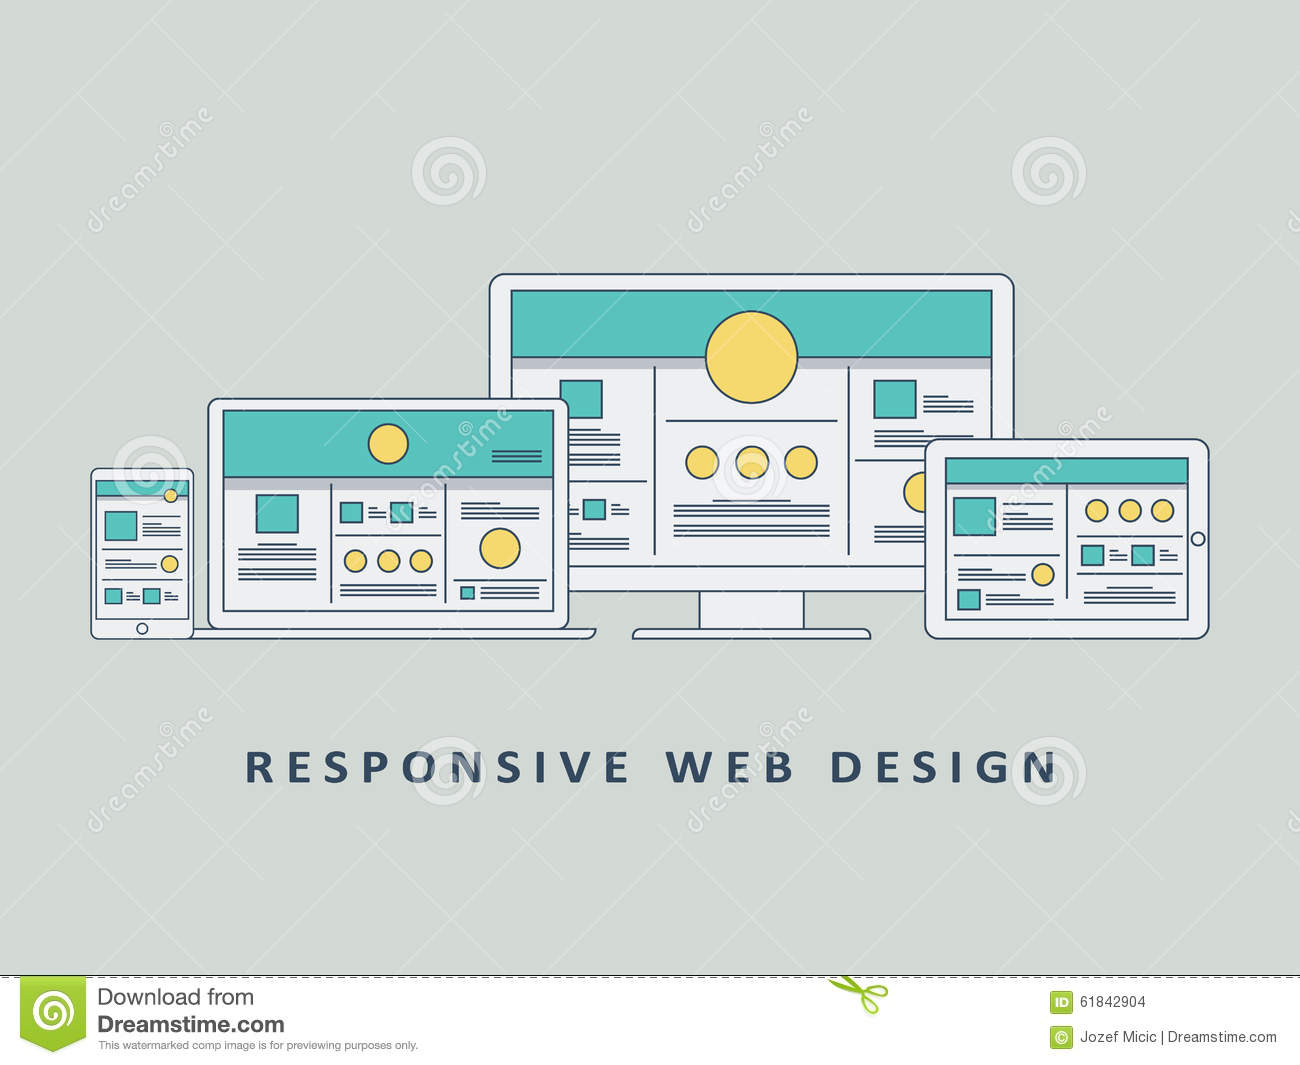 What Is Adaptive Grid Web Design